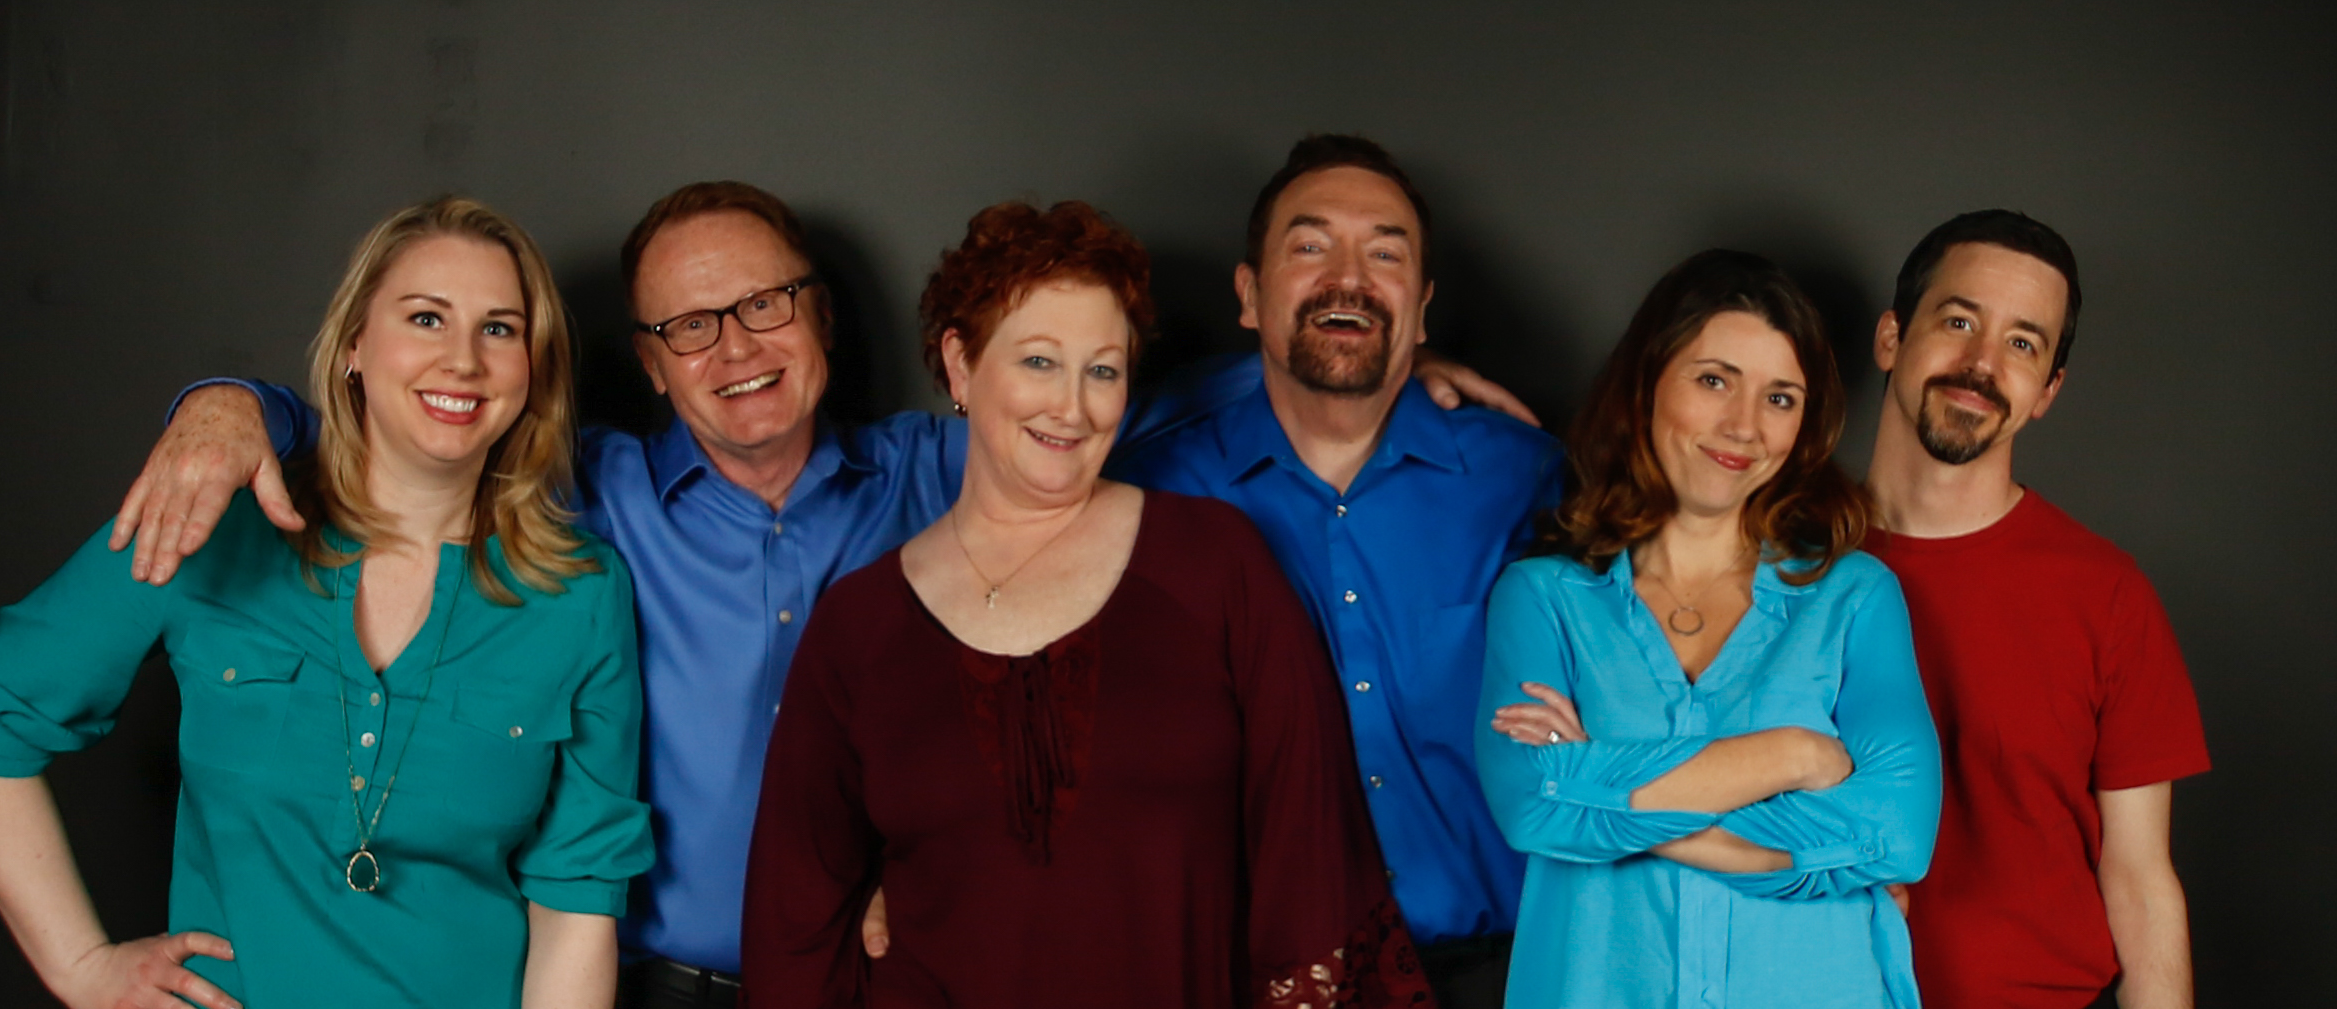 The Cast: Carolyn Lynch, David Duncan, Ellen Kingston, Thom Brown, Gail Payne, Matthew Vire